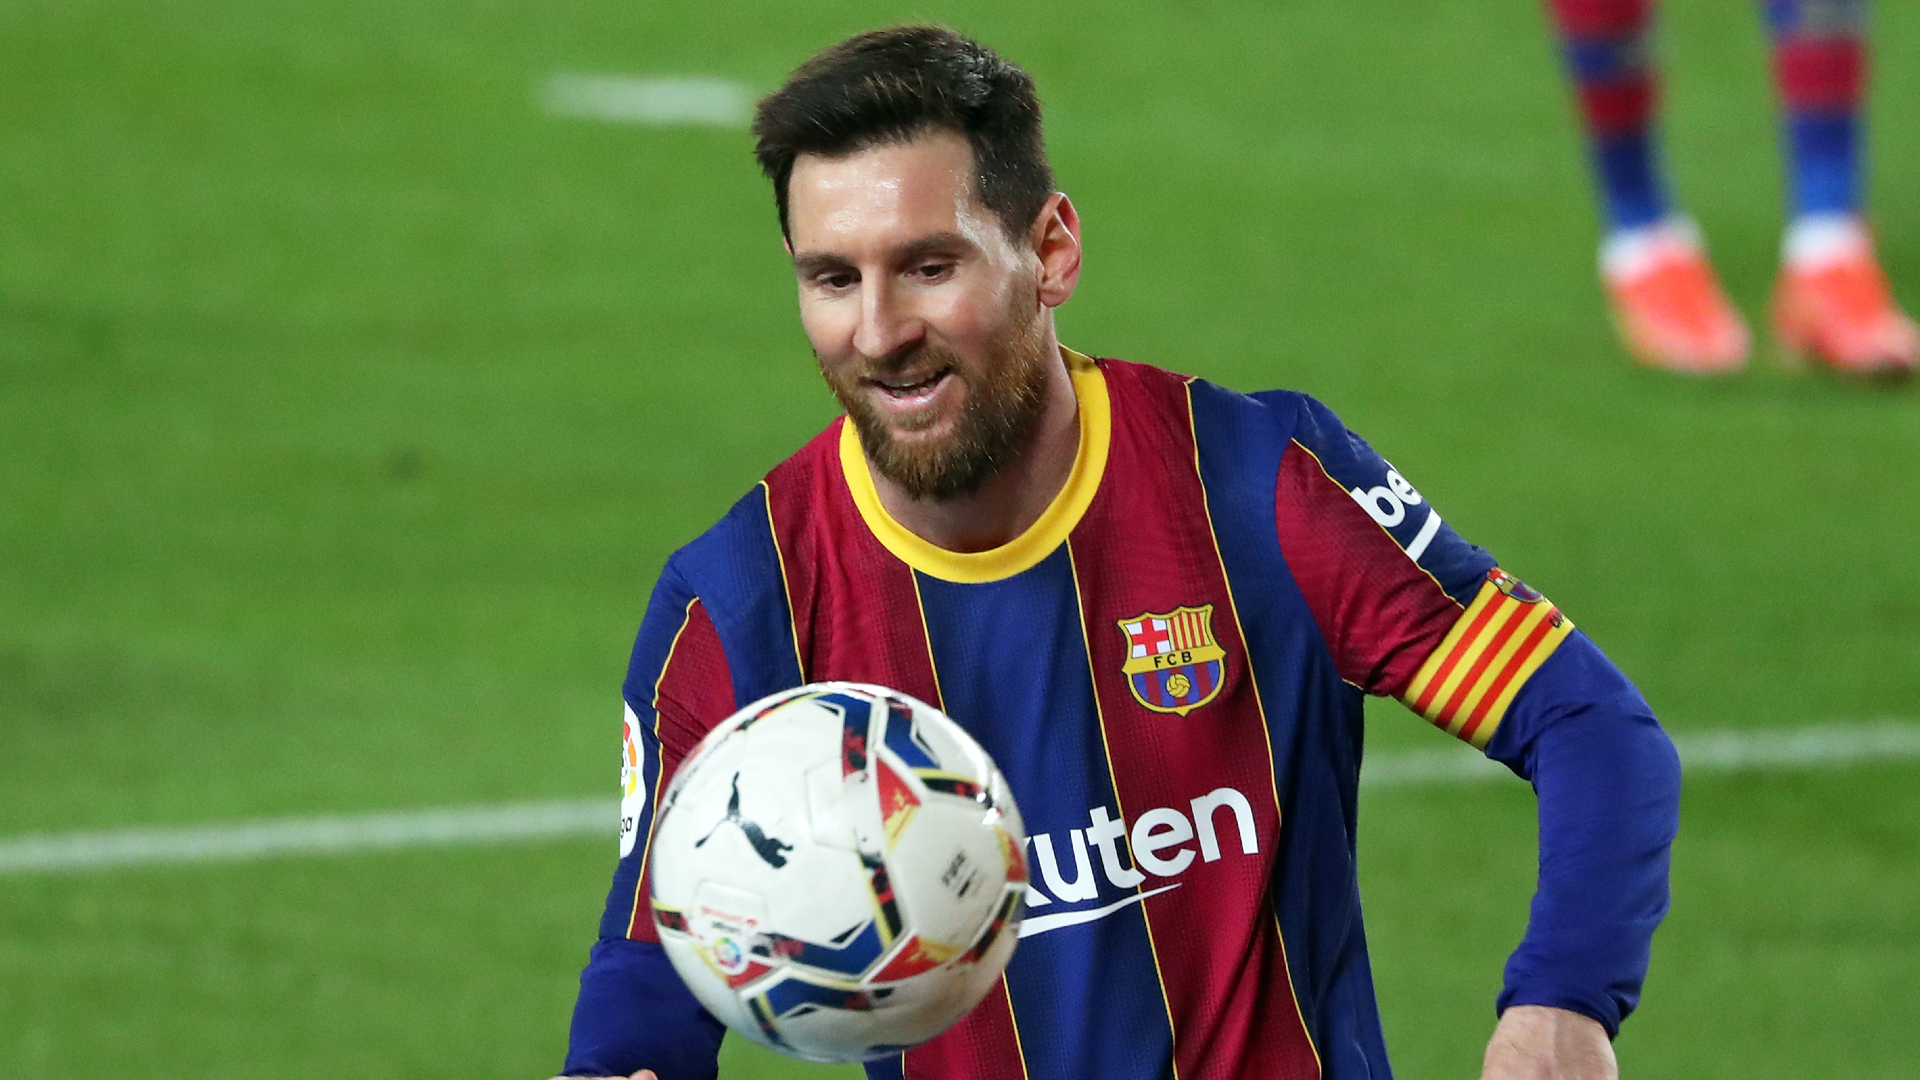 Rumour Has It: Barca haven't moved to re-sign Messi as Neymar return looms